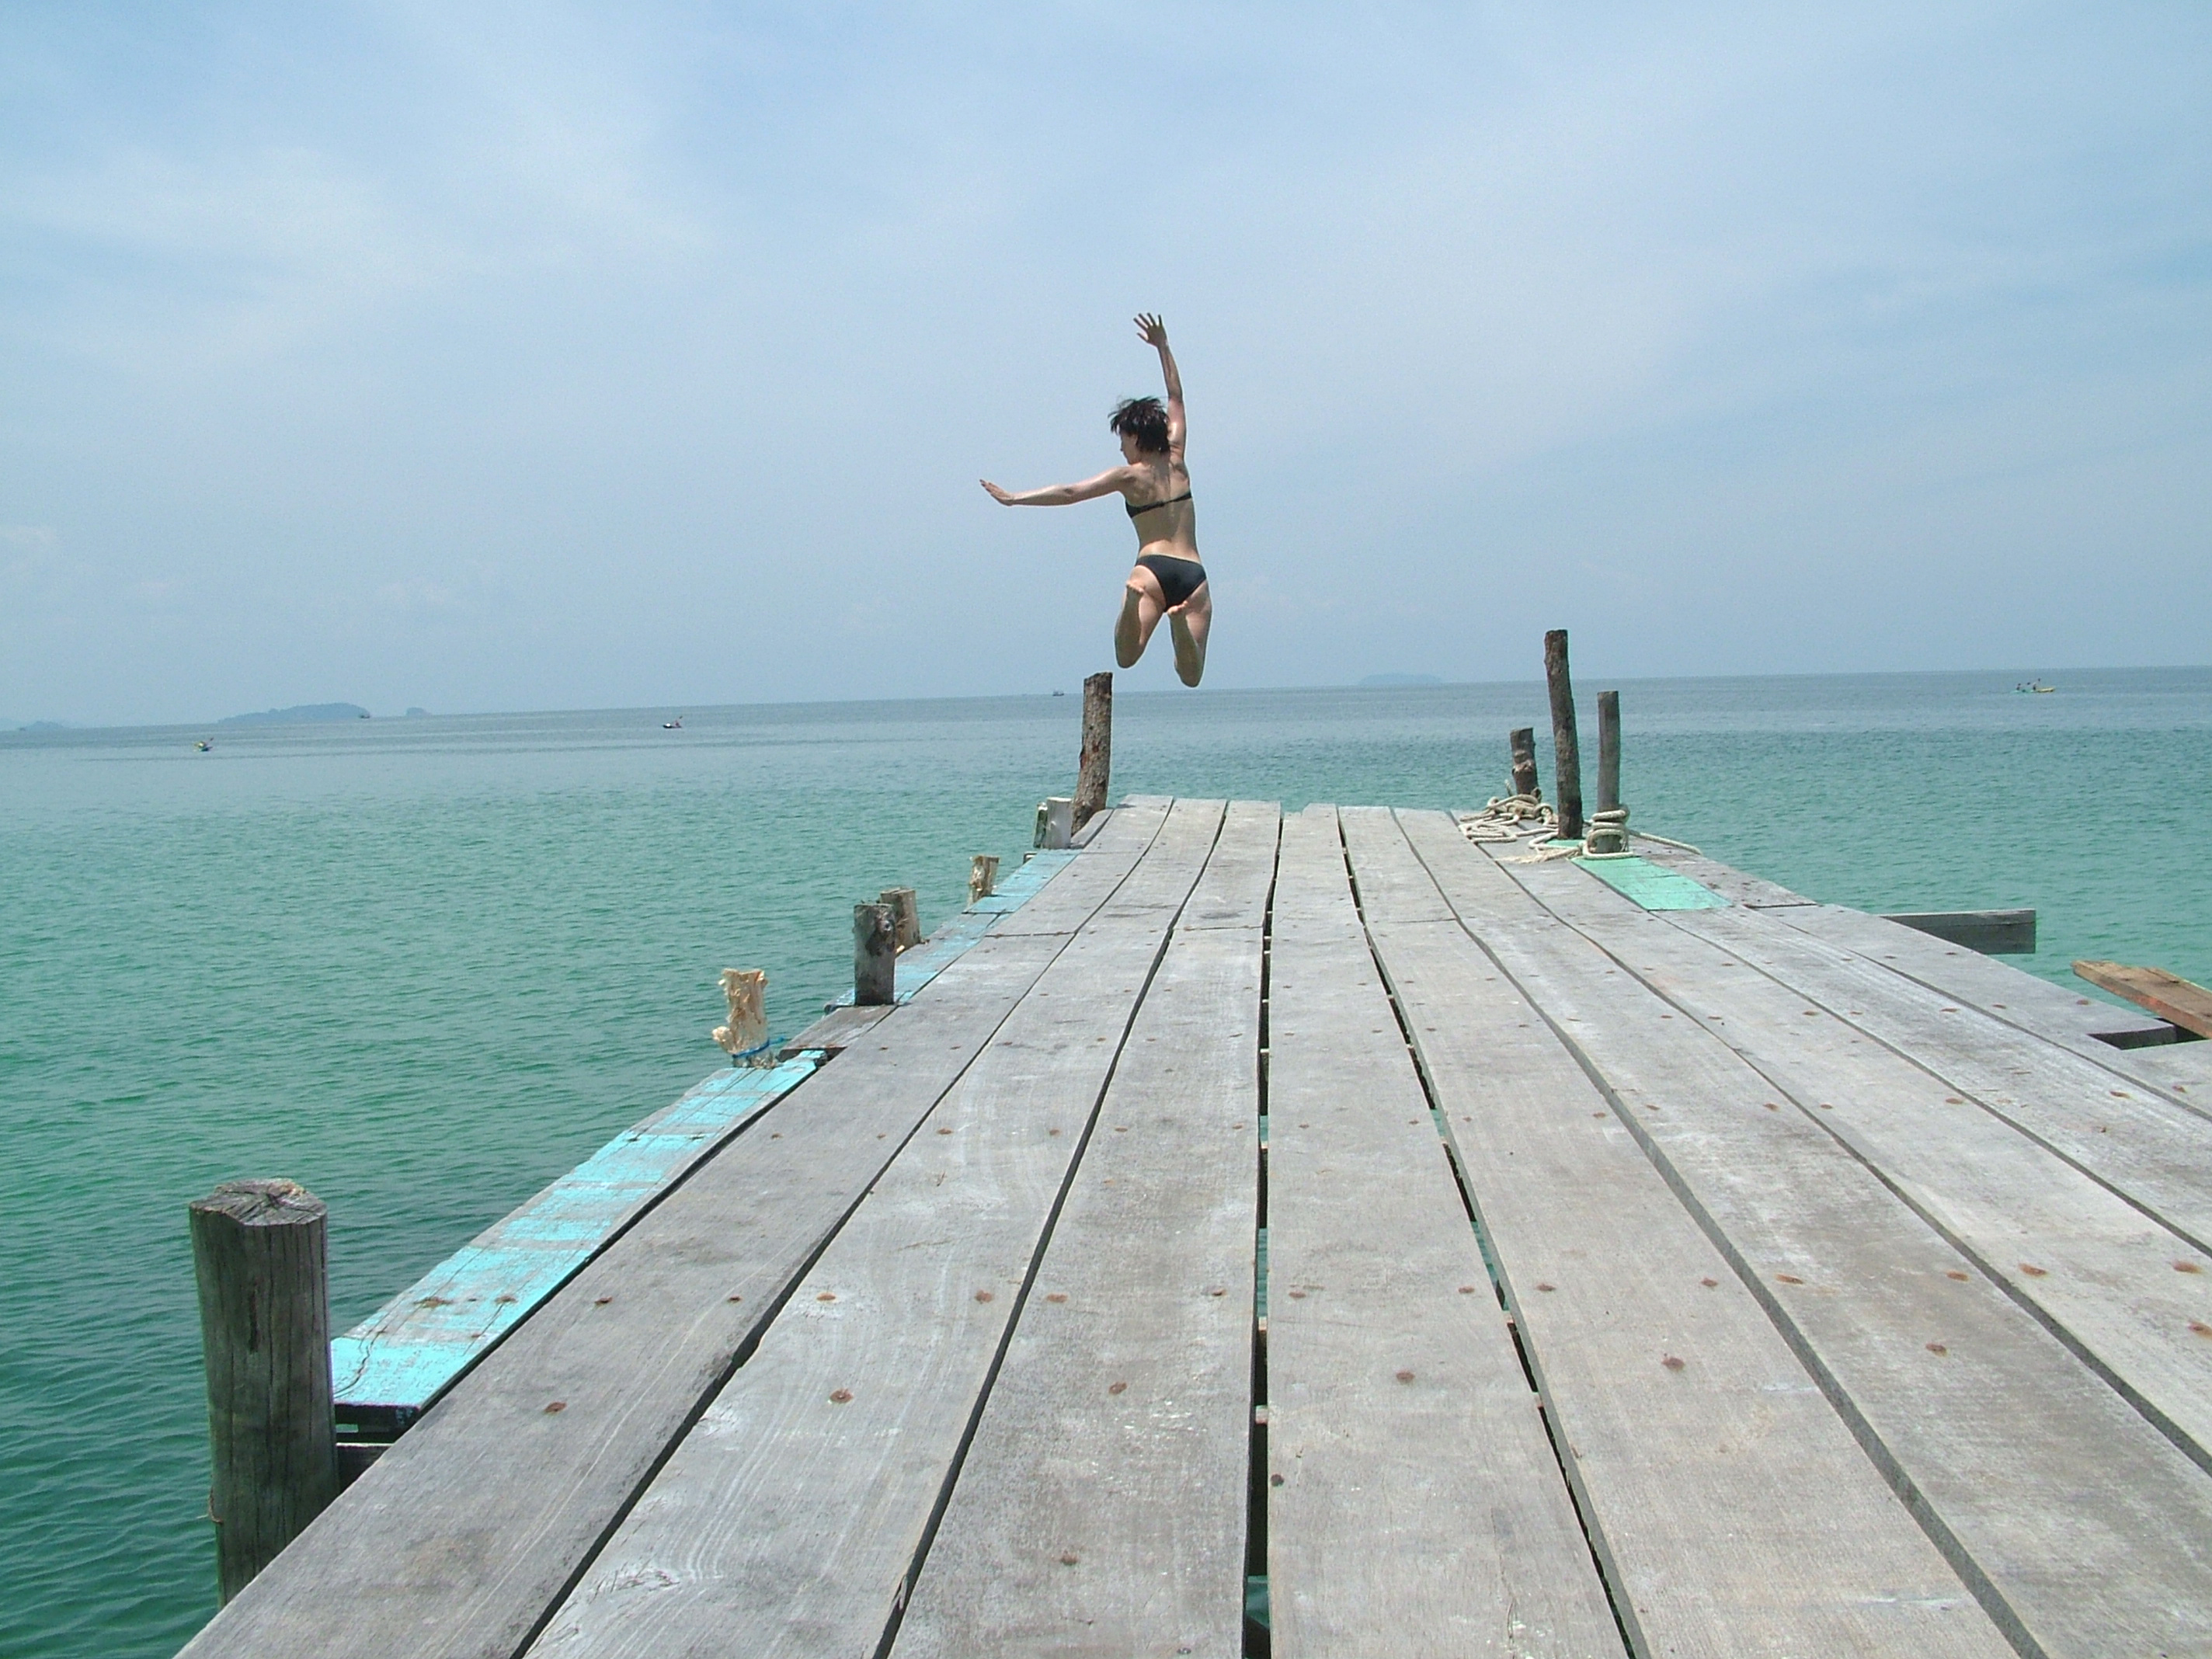 A girl jumping off a pier into the sea